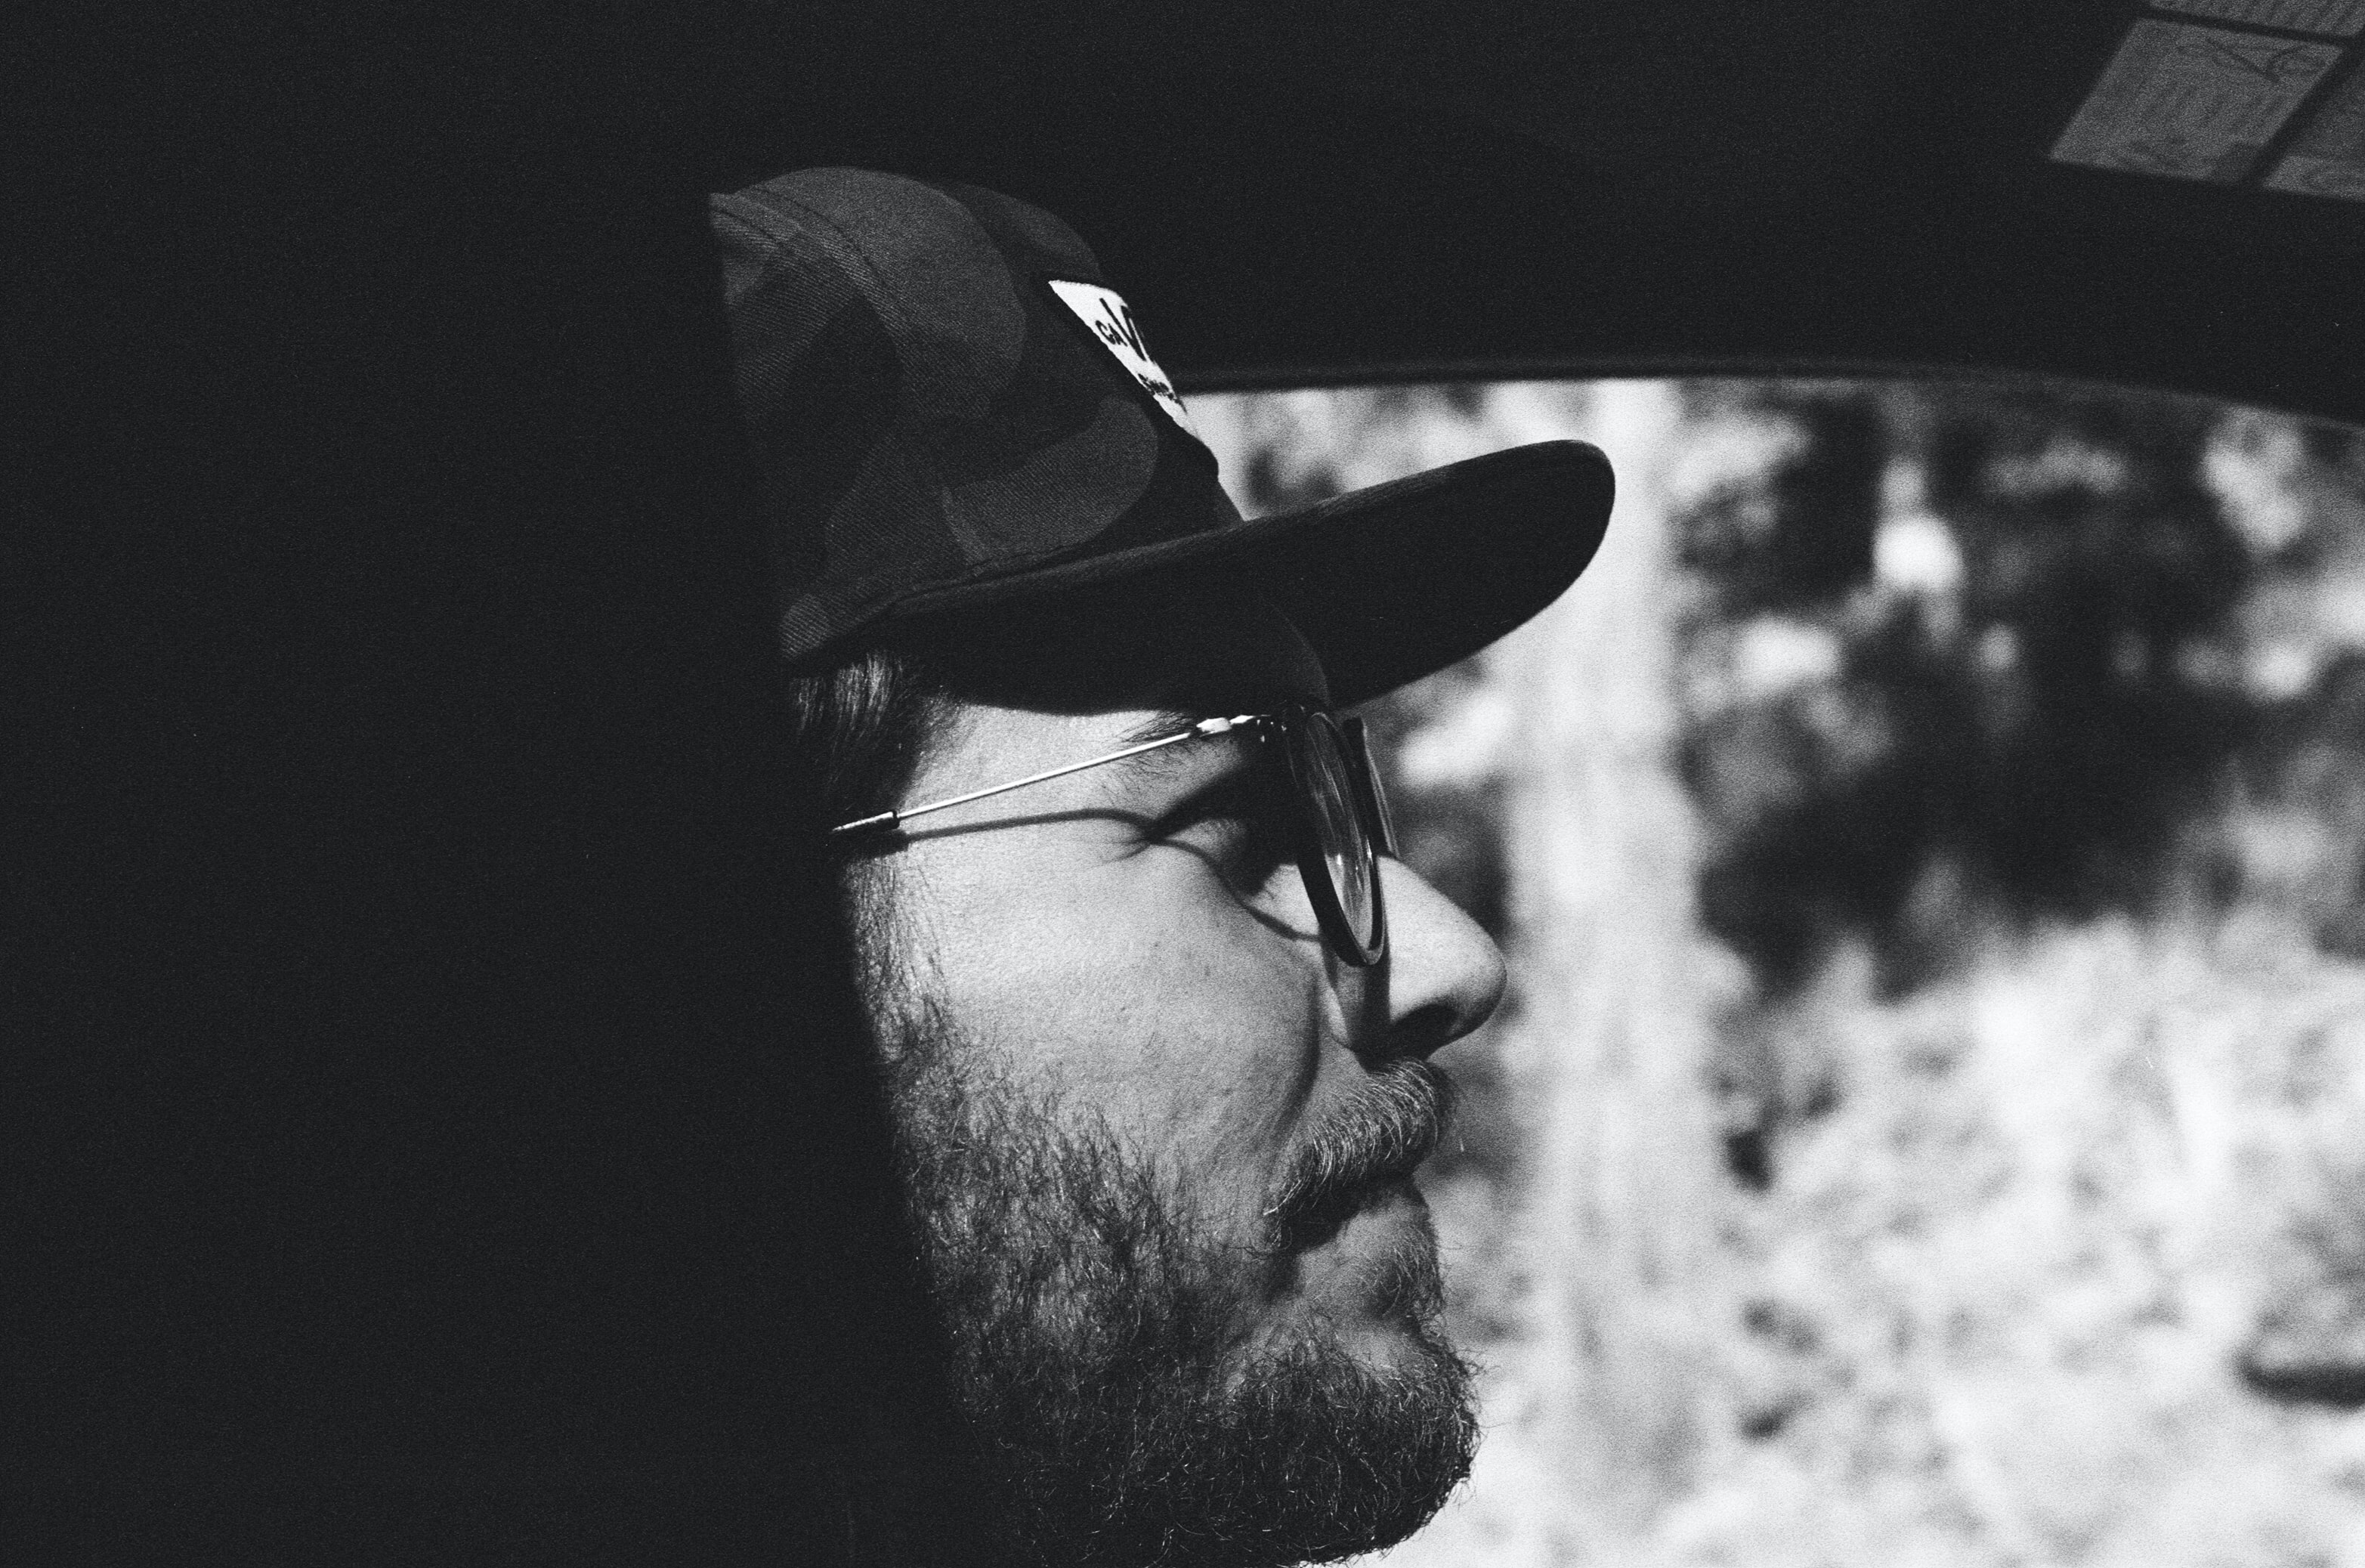 Profile of a man with glasses, a beard, and a hat through a window